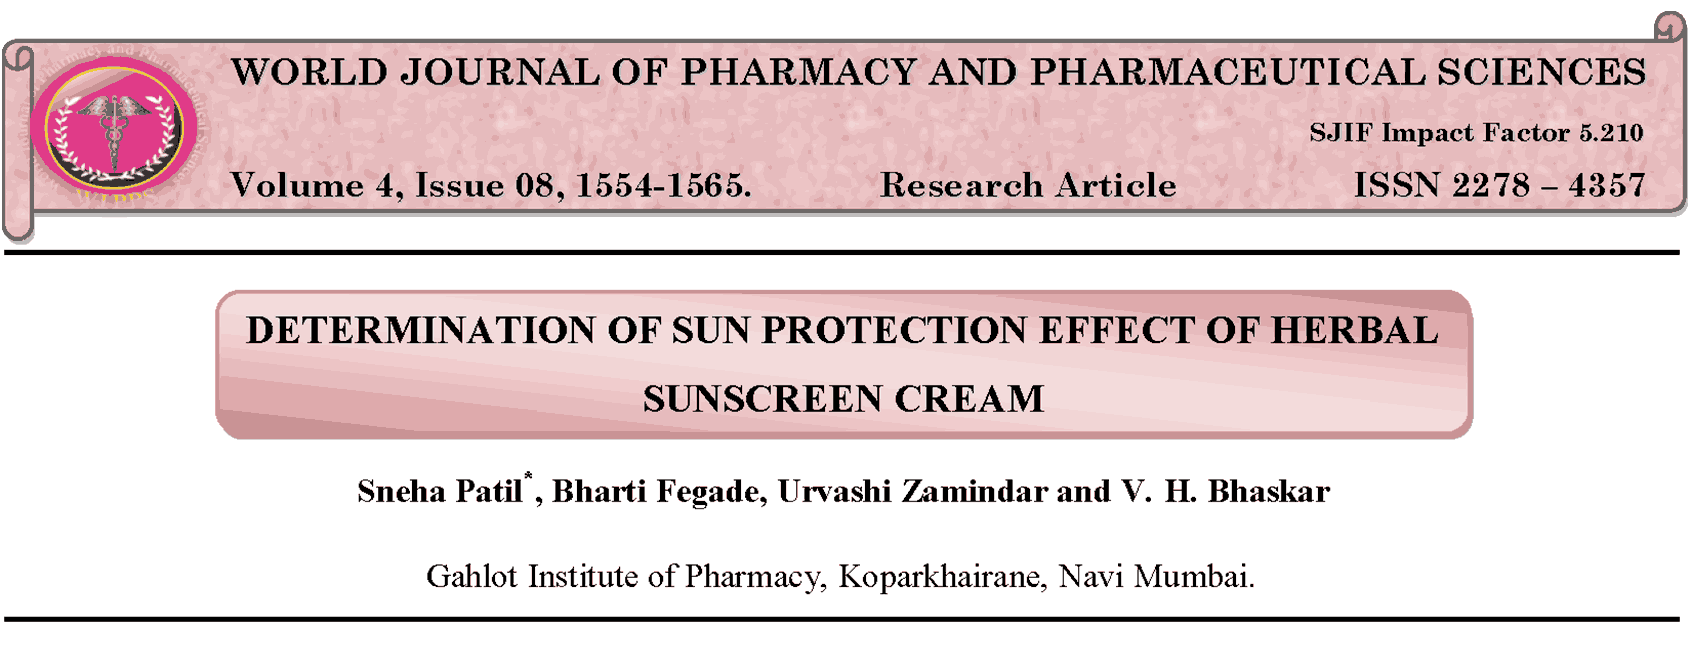 DETERMINATION OF SUN PROTECTION EFFECT OF HERBAL SUNSCREEN CREAM Thumbnail